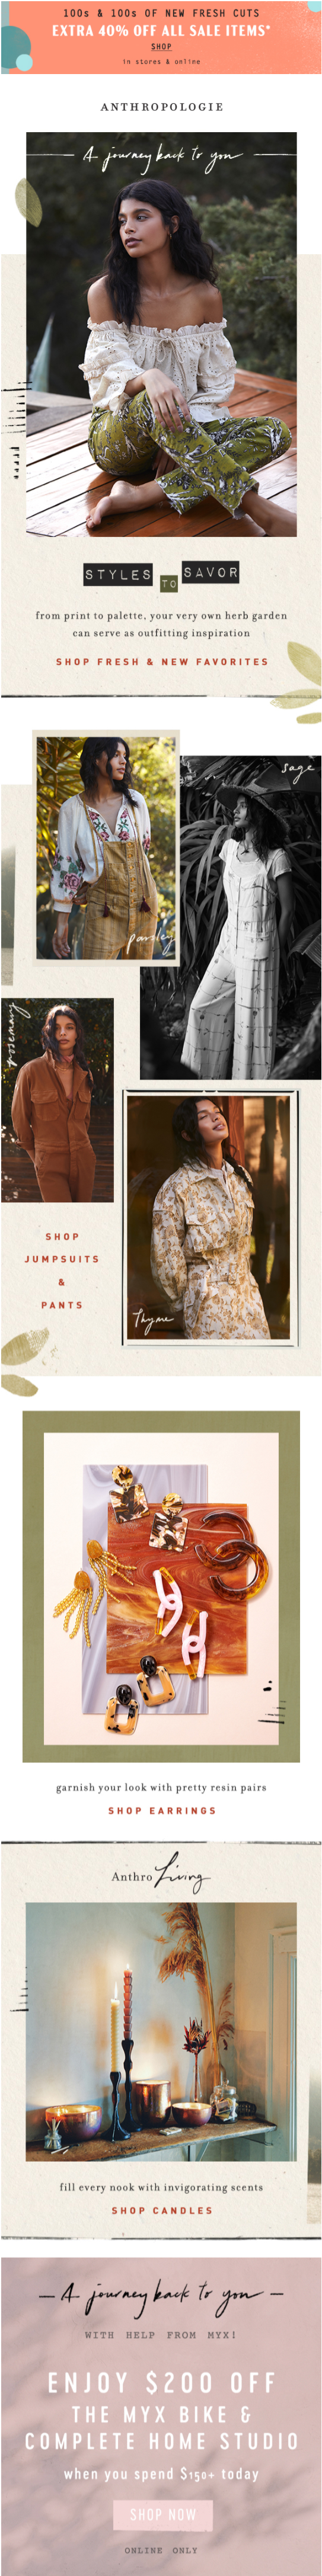 Anthropologie-because-we-herb-you-like-floral-prints